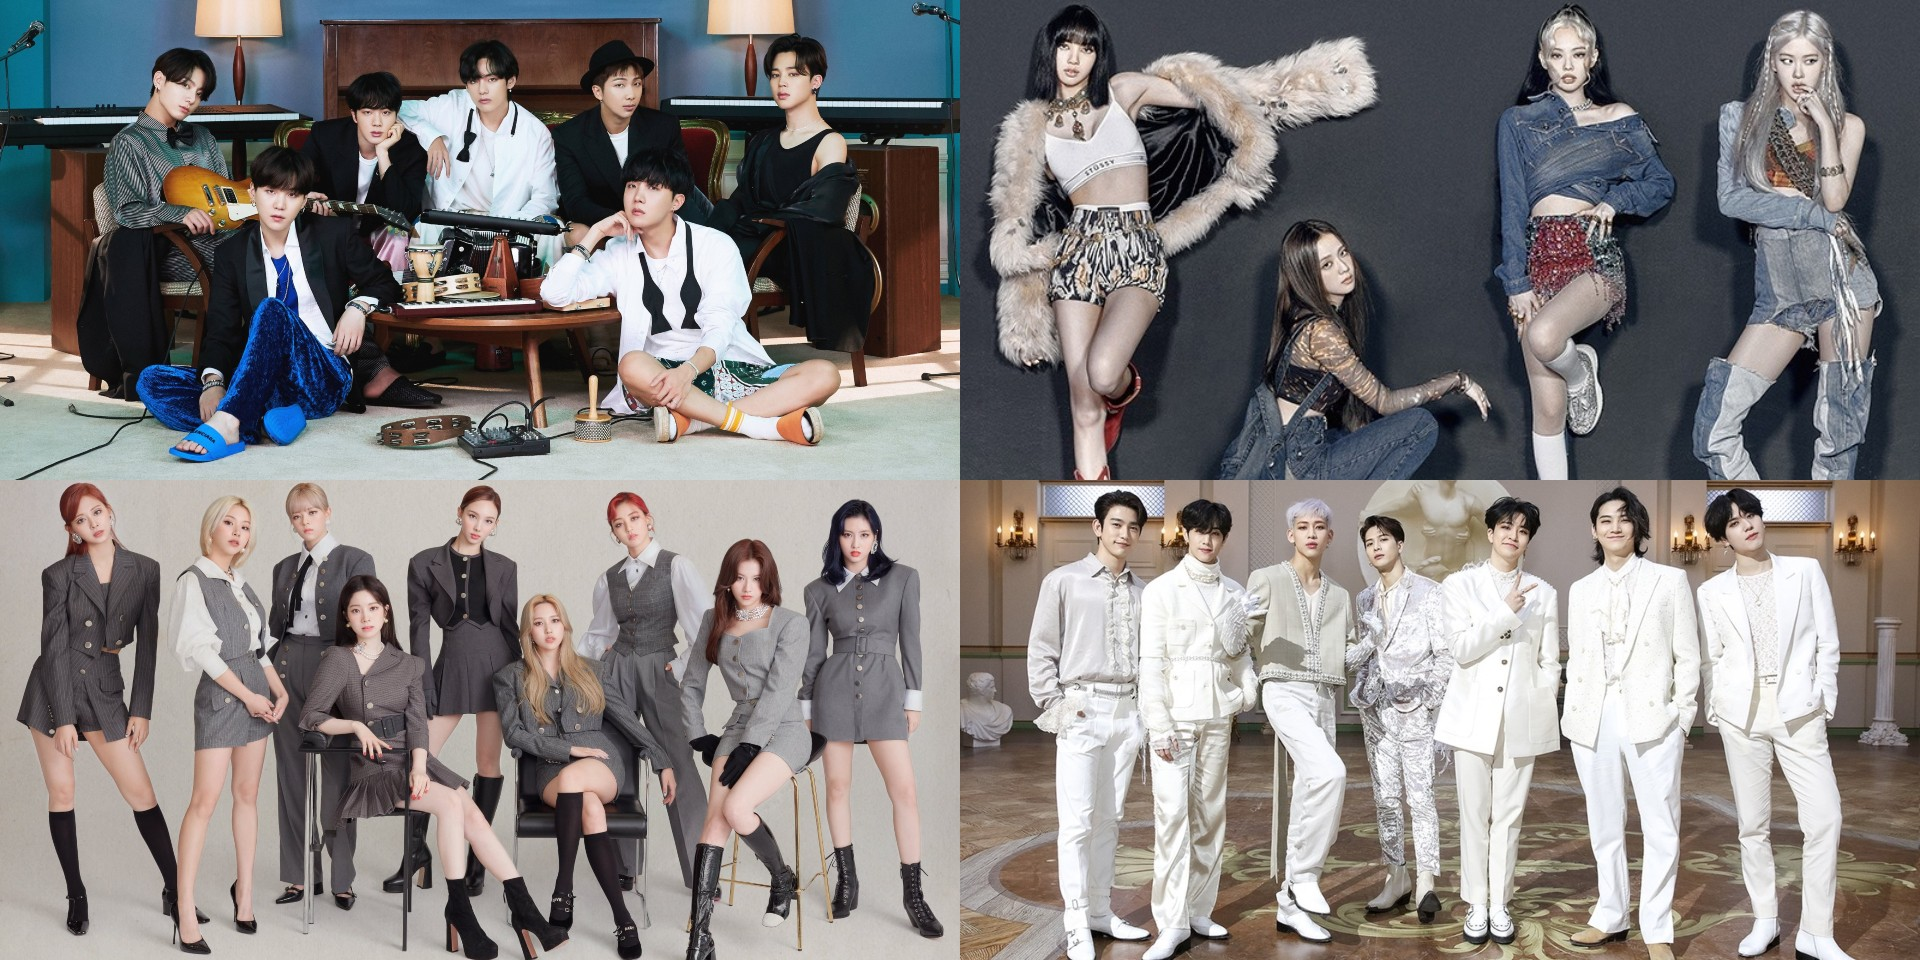 Nominees for 2020 APAN Music Awards revealed – BTS, BLACKPINK, TWICE, GOT7, and more